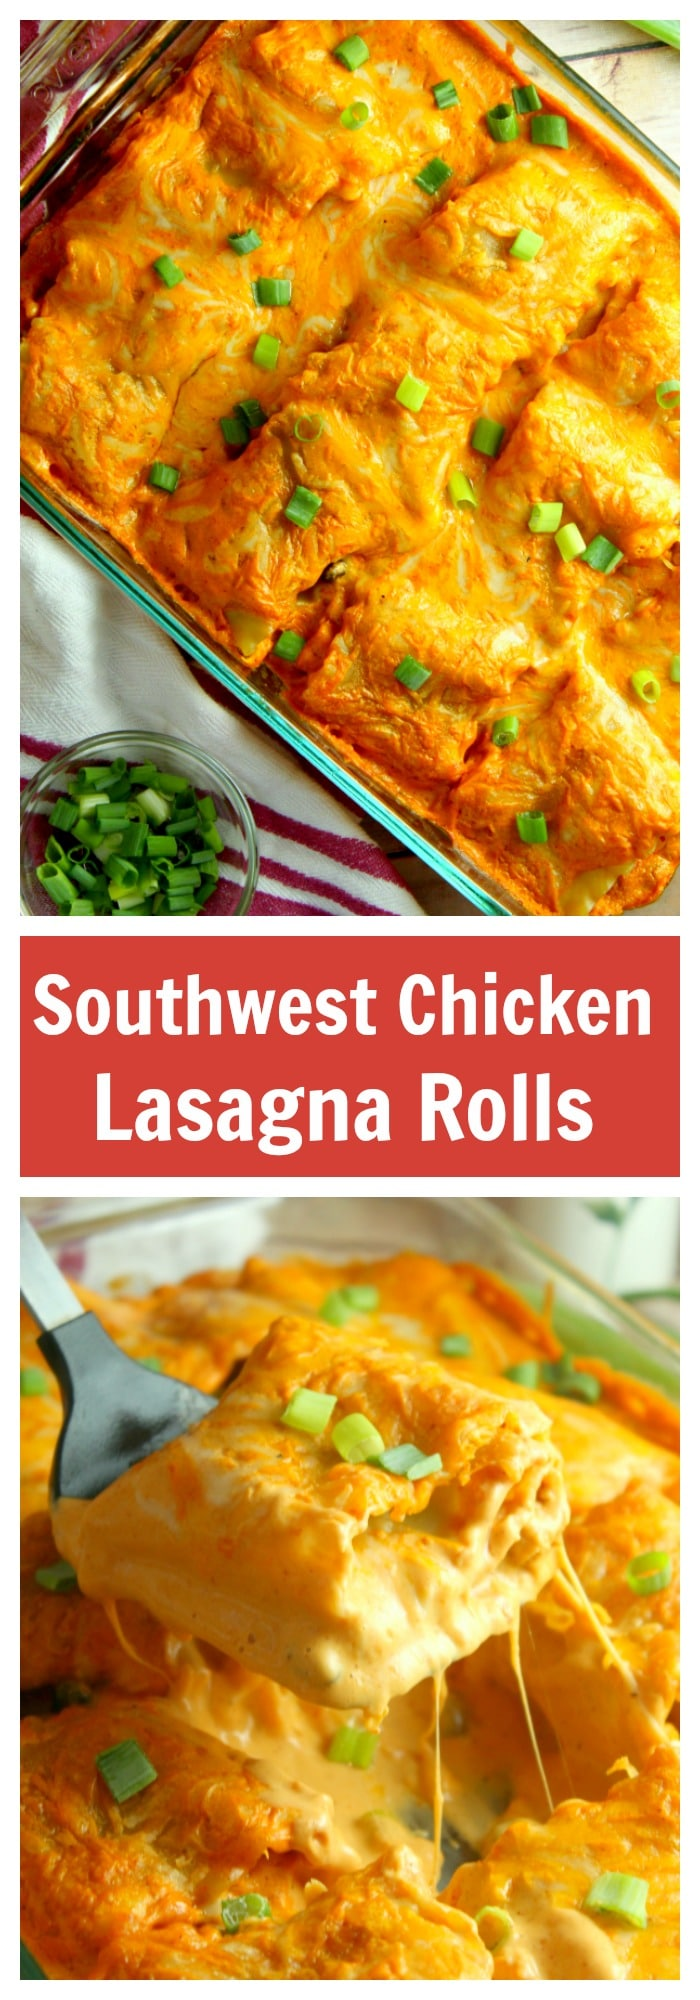 Have a comforting and flavorful dinner on the table in less than one hour with this delicious Southwest Chicken Lasagna Rolls recipe. Freezable too!